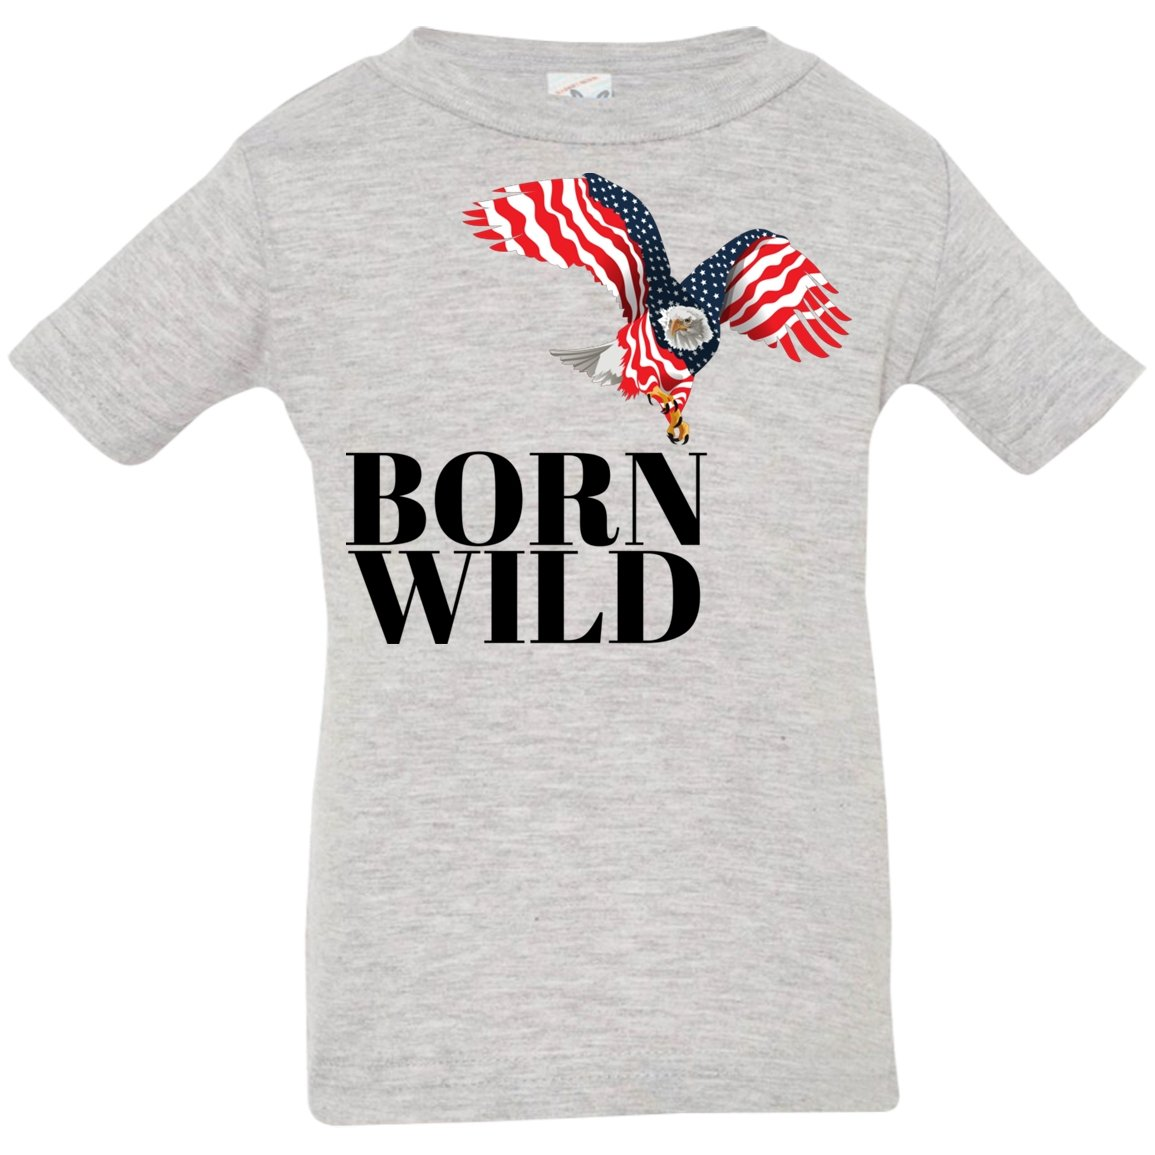 "T-Shirts ""Born Wild"" Short Sleeve T-Shirt - 5 colors - ZERO TO THREE CLUB T-Shirts"